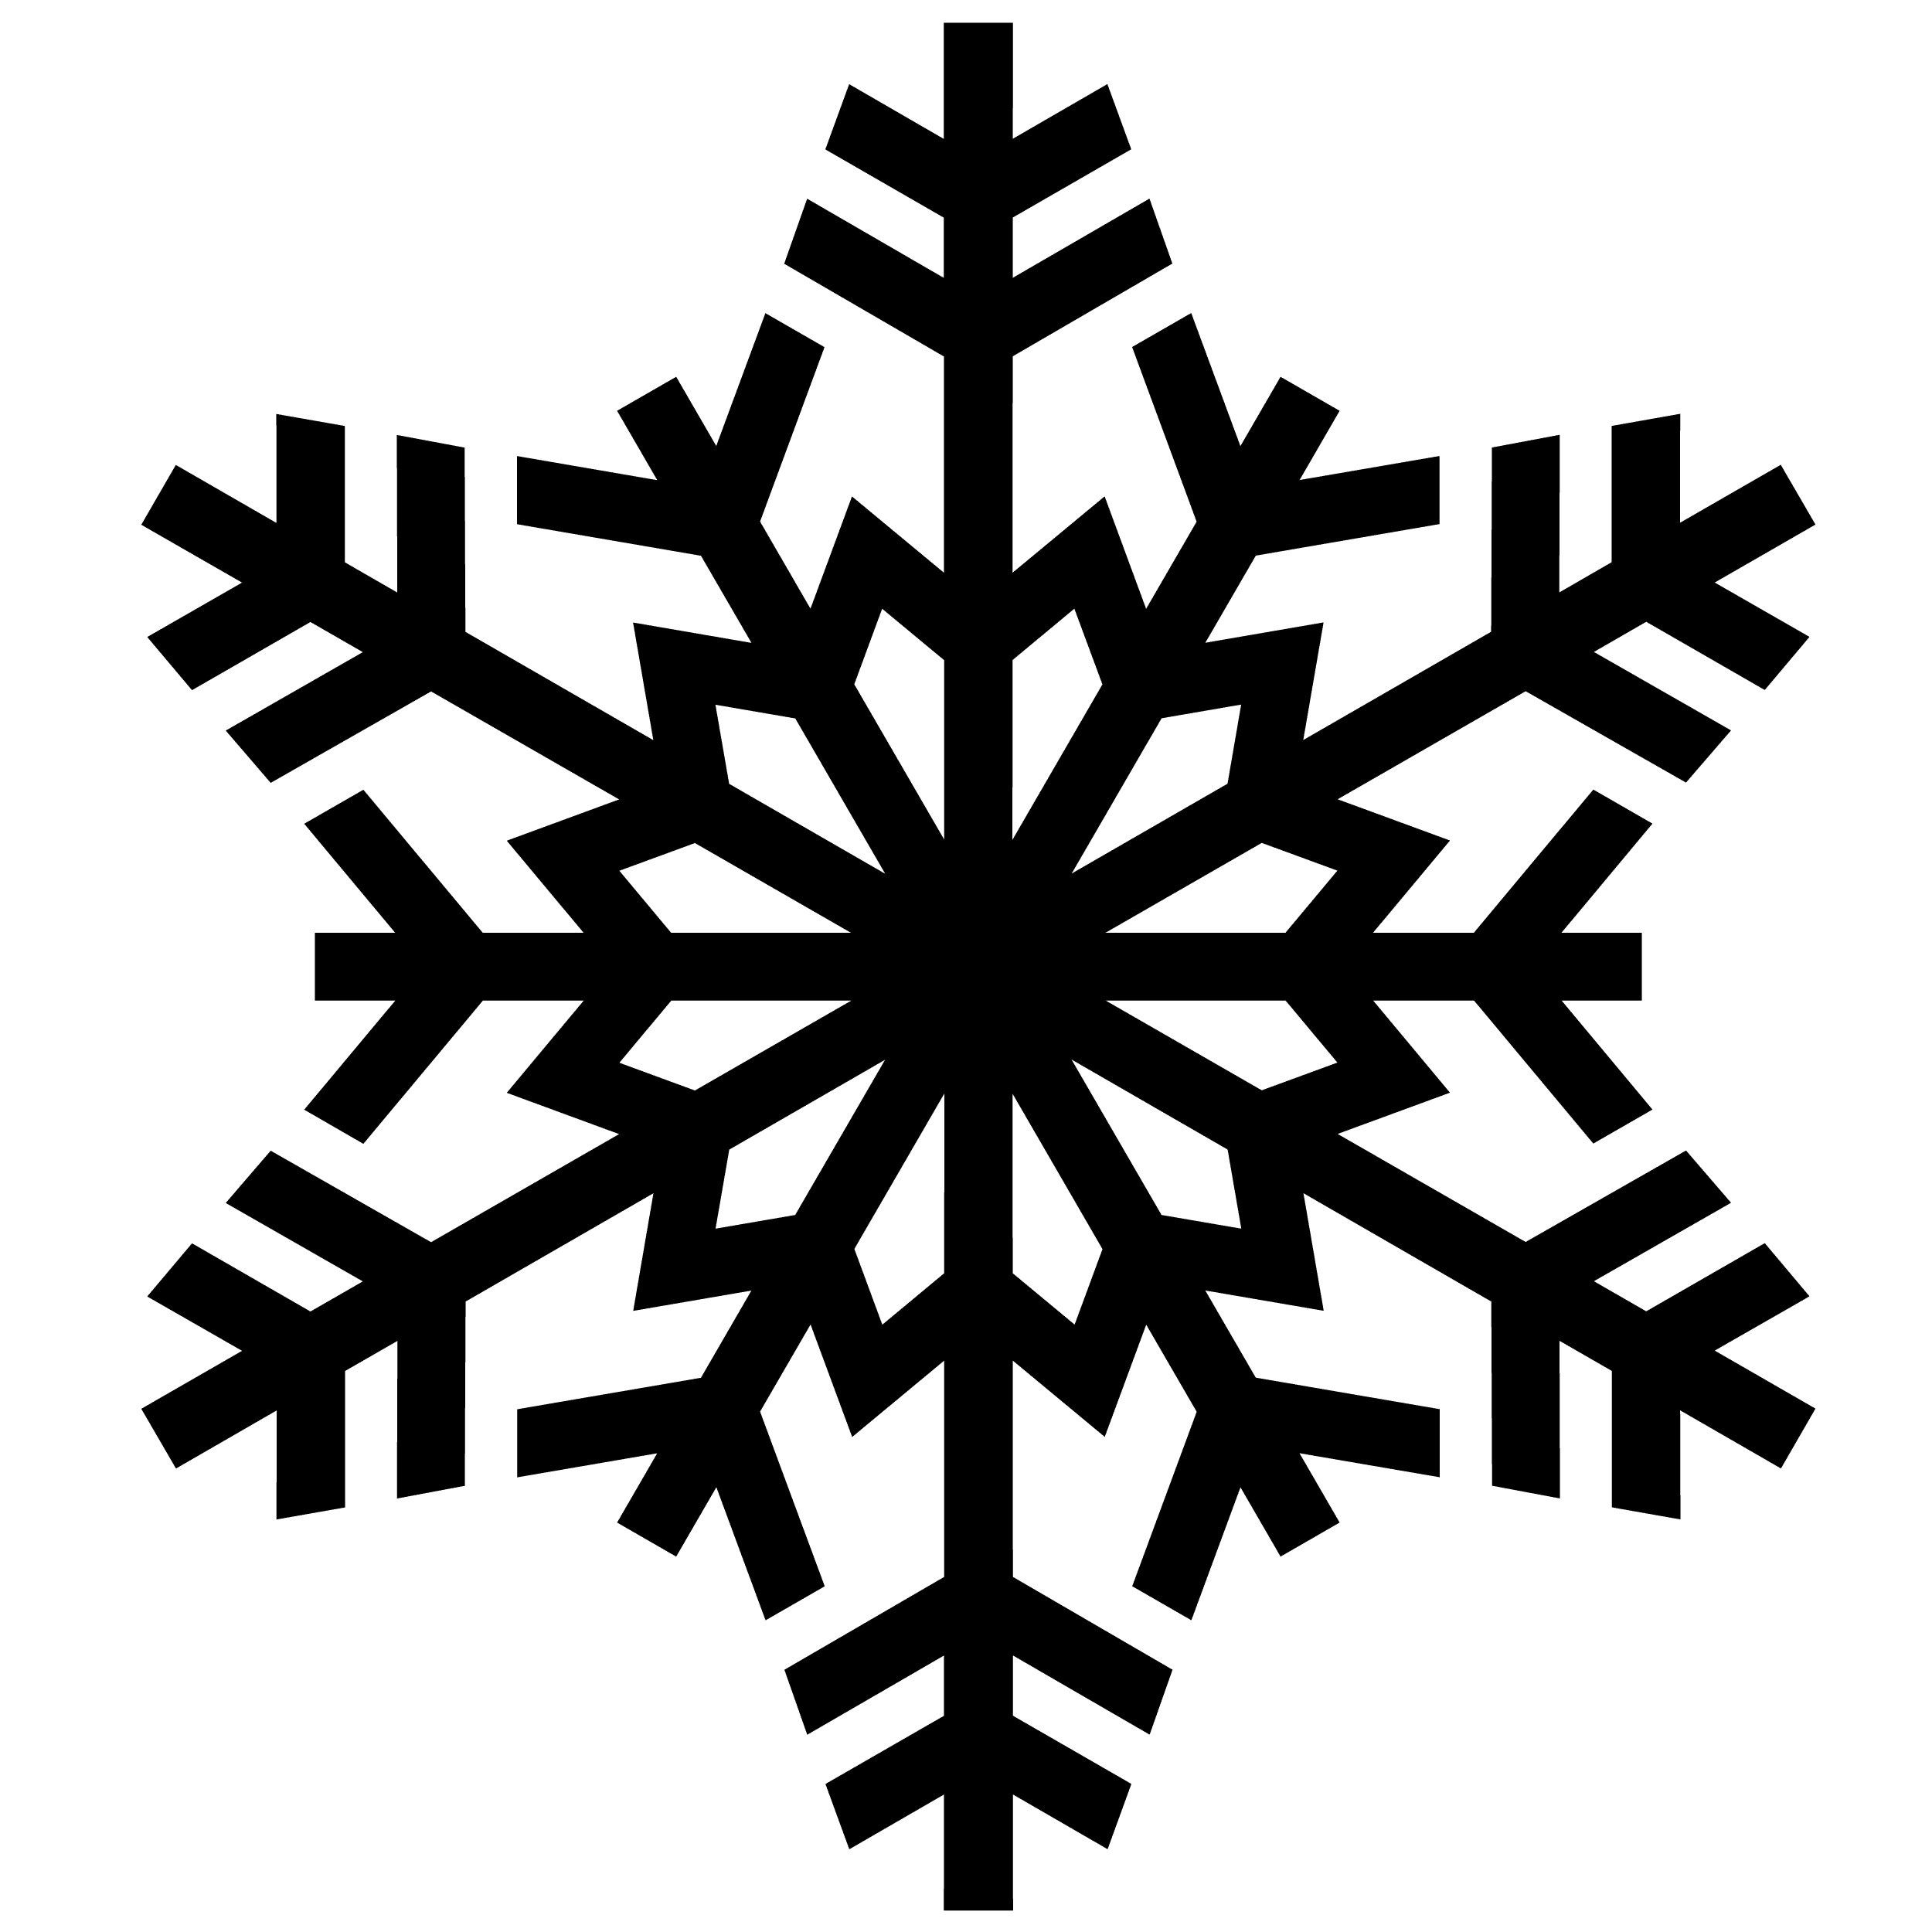 Snowflake Counted Cross Stitch Pattern Christmas Crafts Pdf Digital Instant Download Epattern Ebook Embroide Snowflake Clipart Snowflake Stencil Stencil Crafts